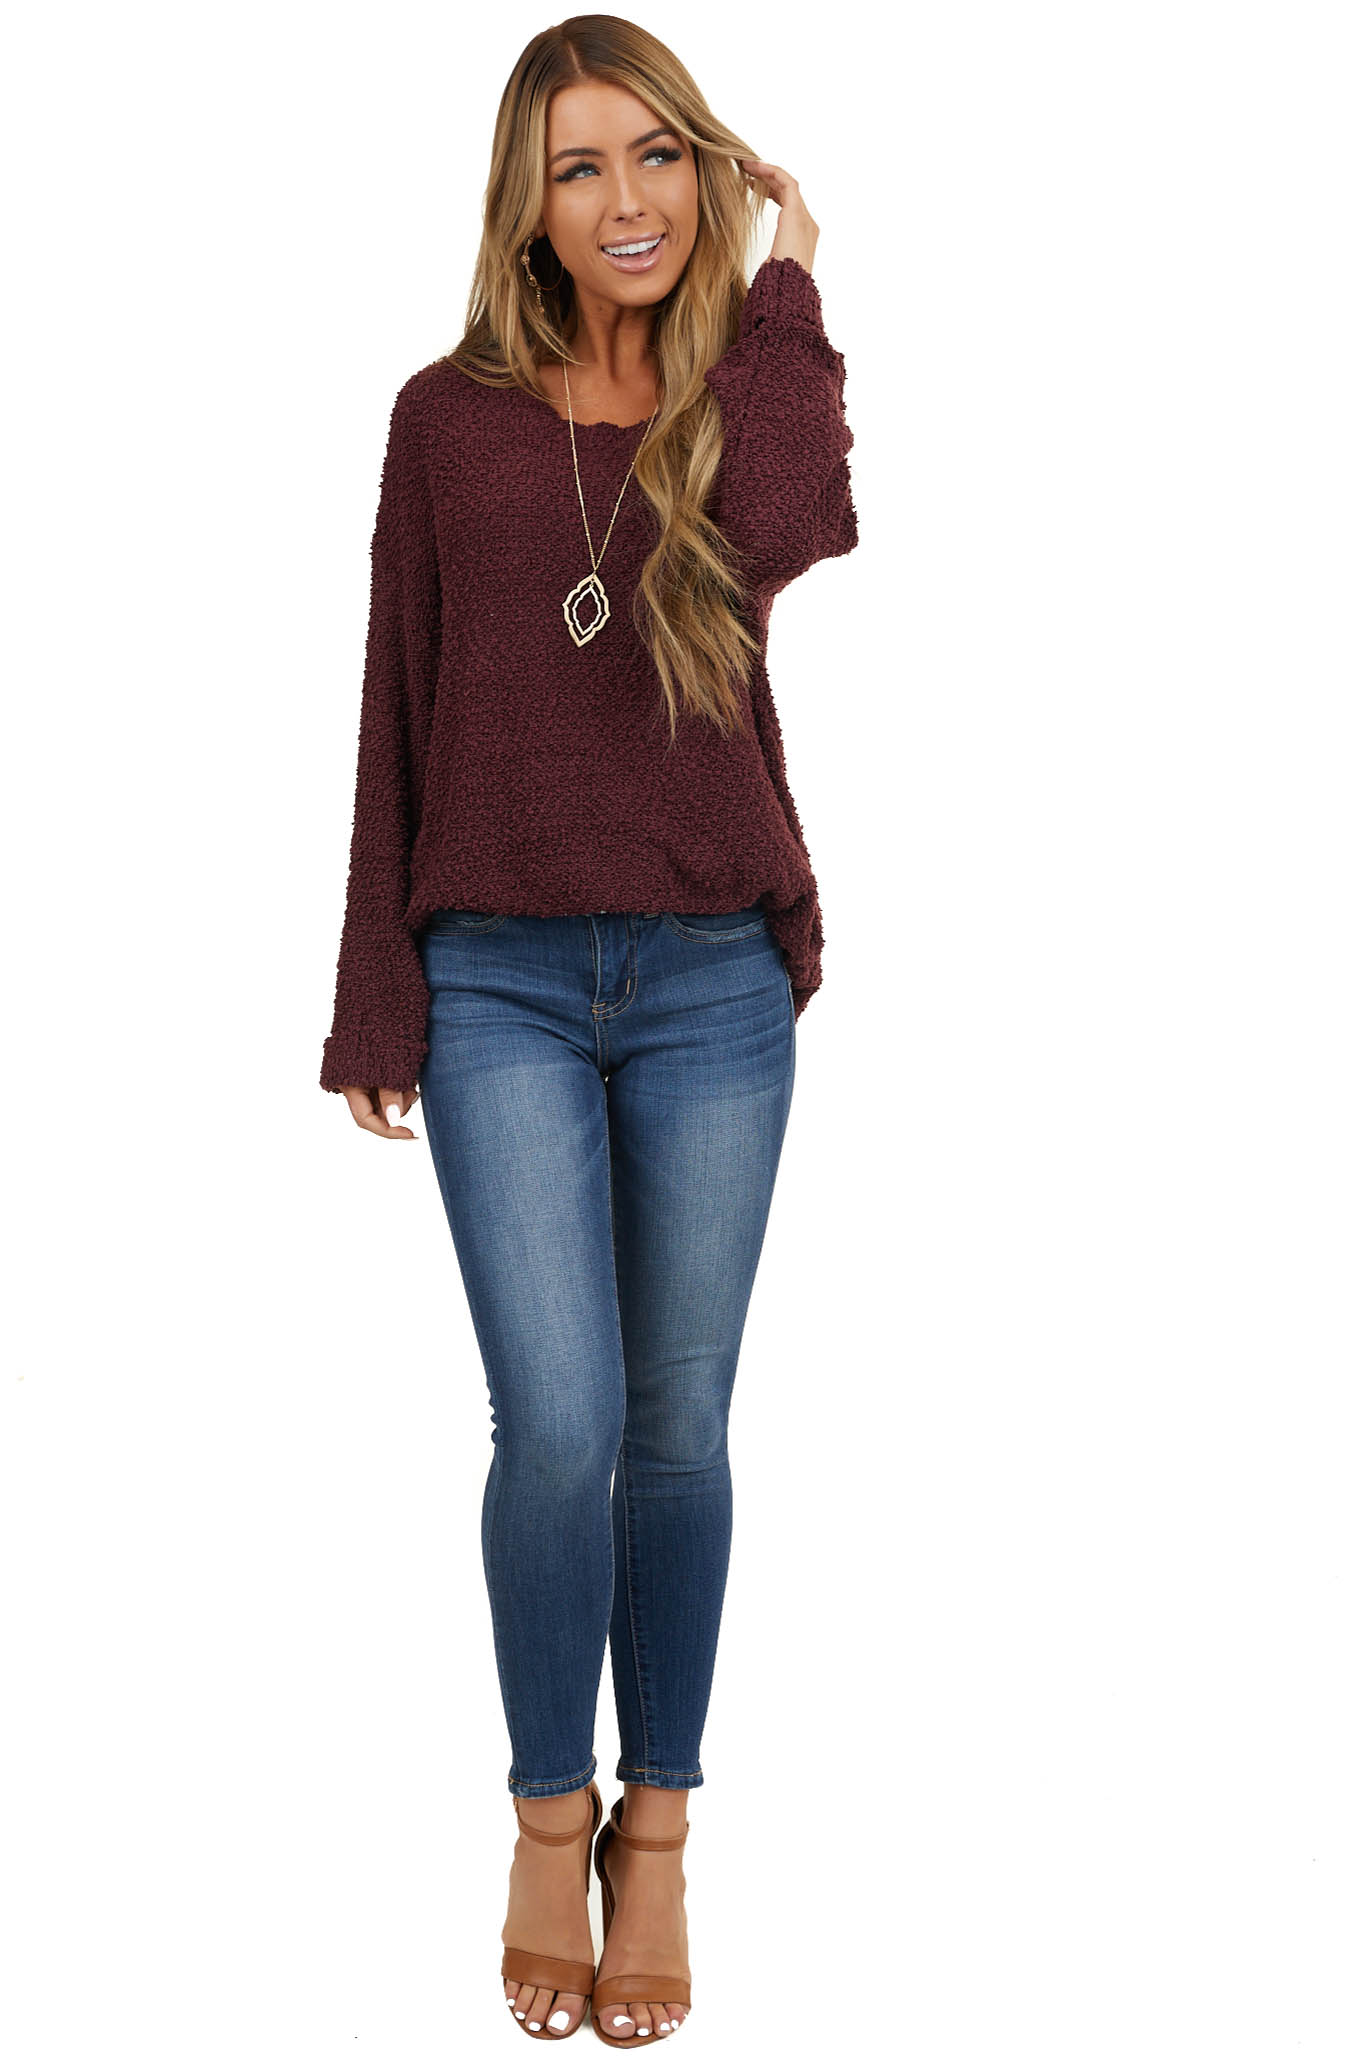 Plum Popcorn Textured Knit Sweater with Bell Sleeves